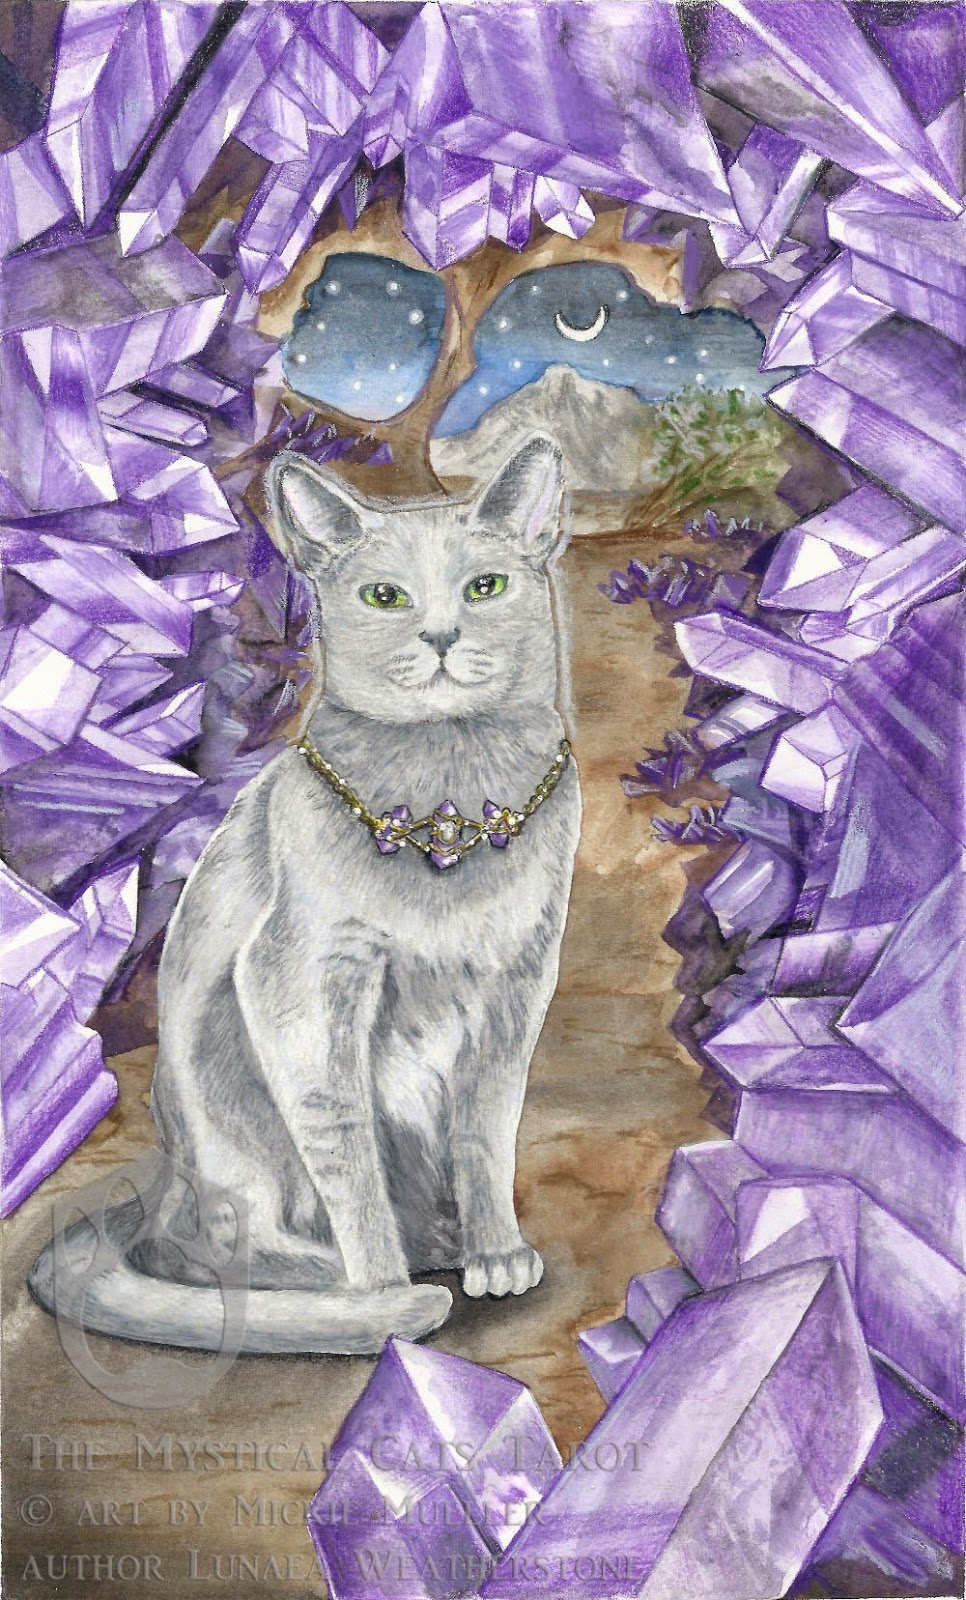 Tales From The Old Wooden Art Table: Feline Friday, The